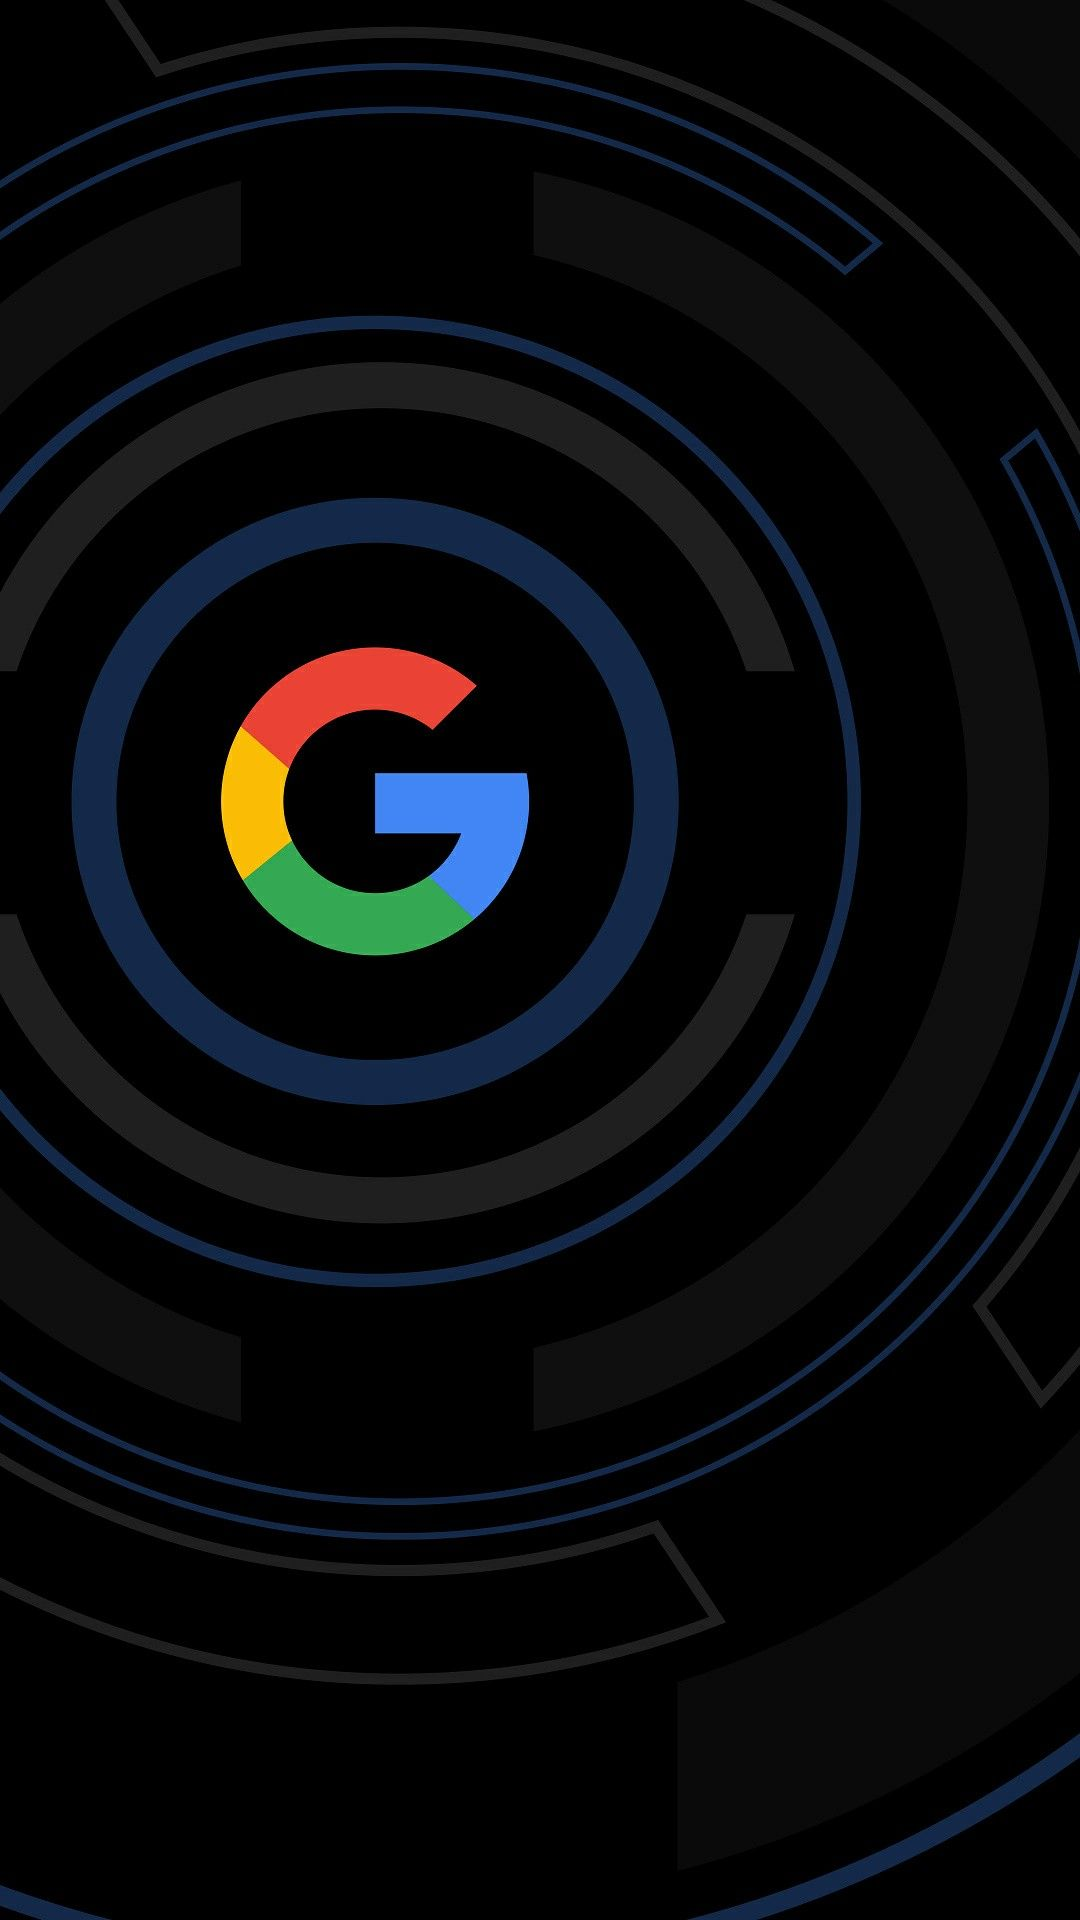 Dark Google Wallpaper For Pixel Google Pixel Wallpaper Profile Wallpaper Phone Screen Wallpaper